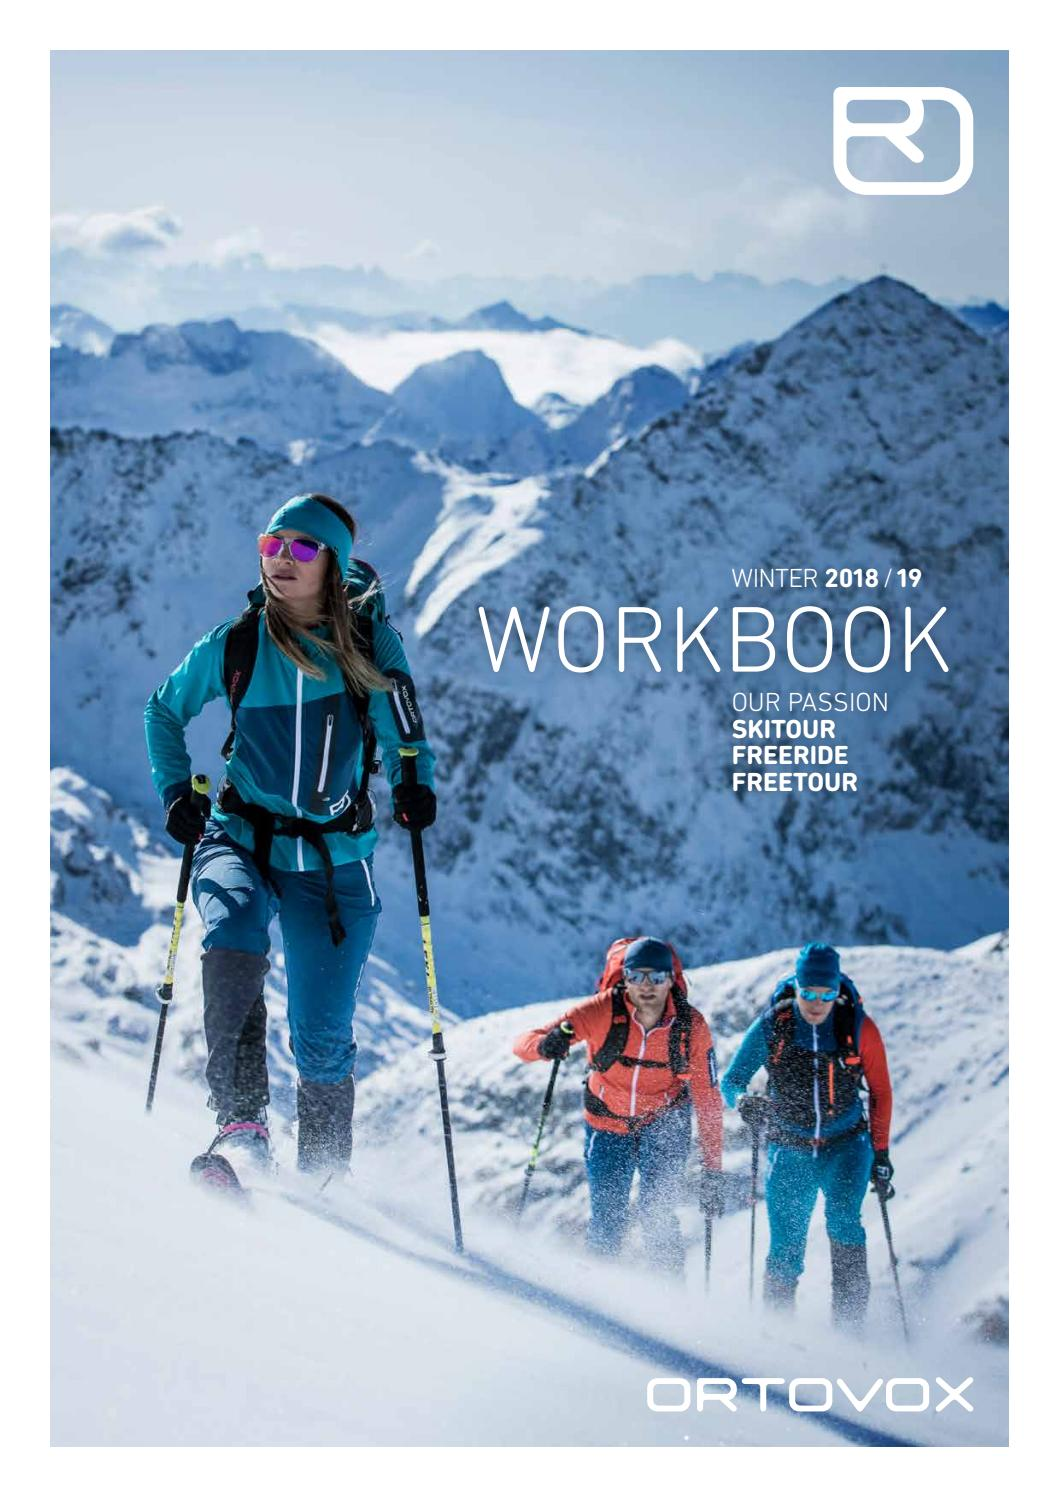 Workbook 1819 DE by ORTOVOX issuu